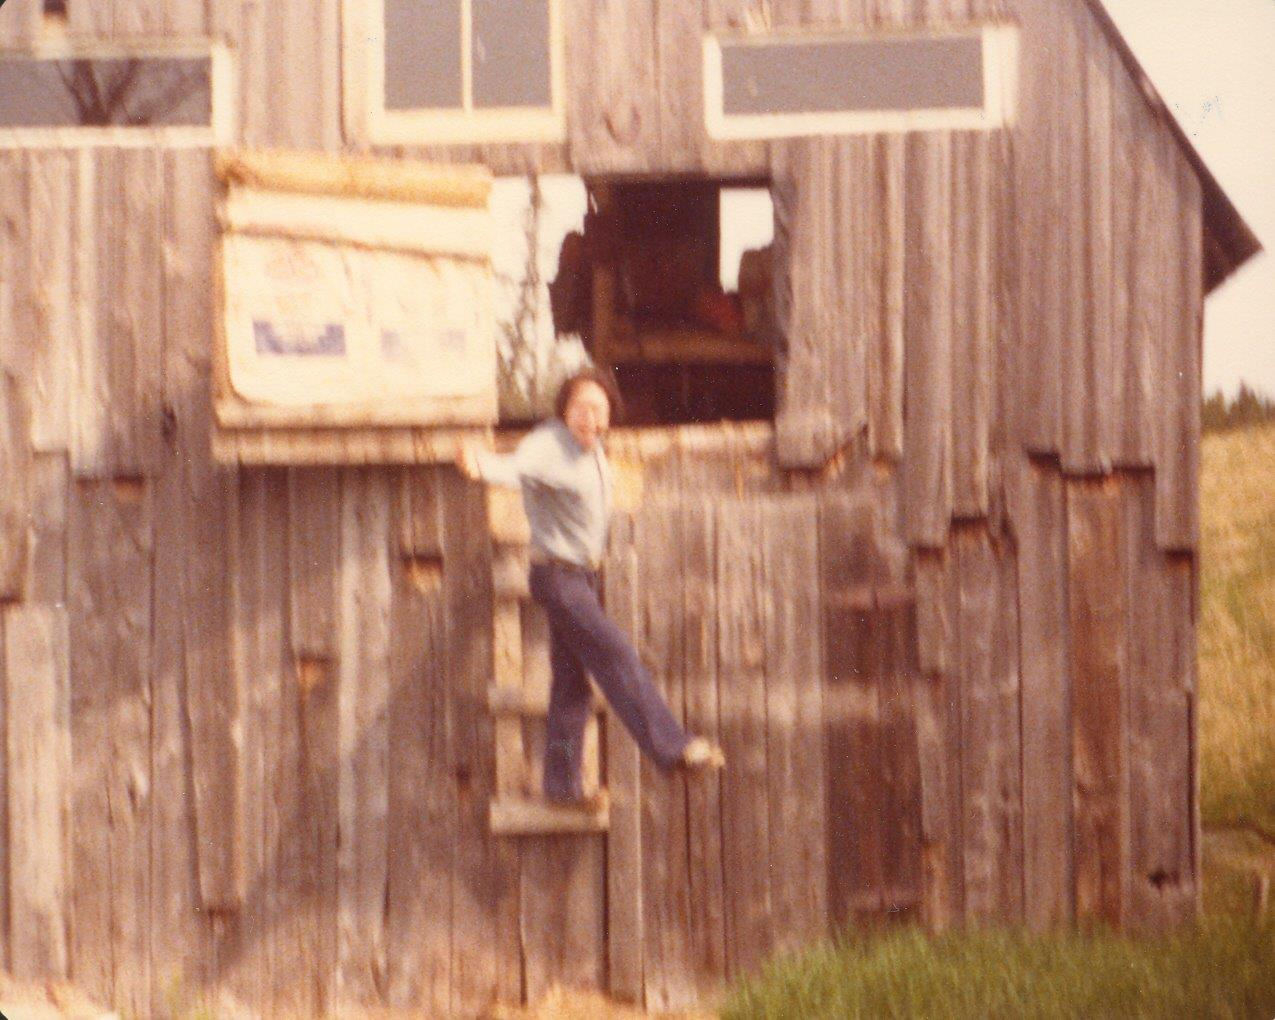 198005xx-ra-002-Wolf At Barn-Randboro